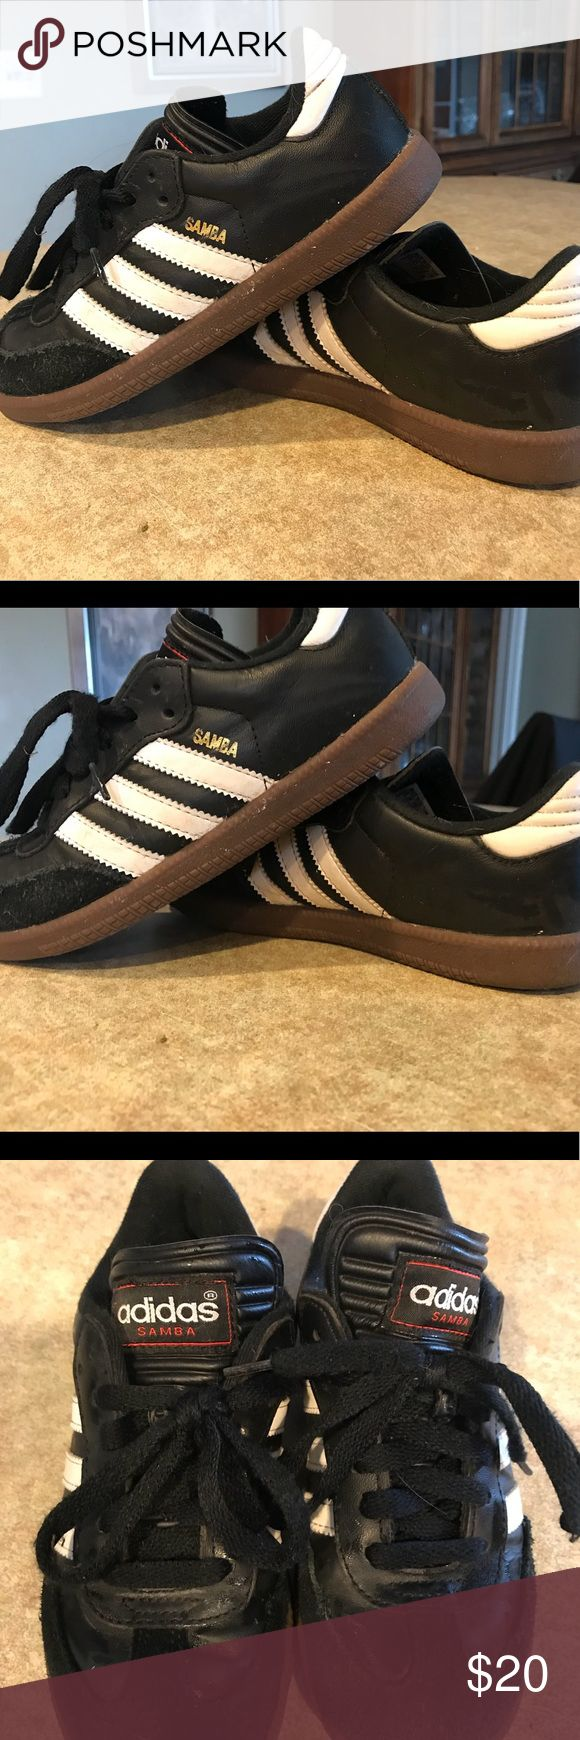 EUC Adidas Samba Size 2 Worn indoors on Turf a few times before she  outgrew them. adidas Shoes Sneakers